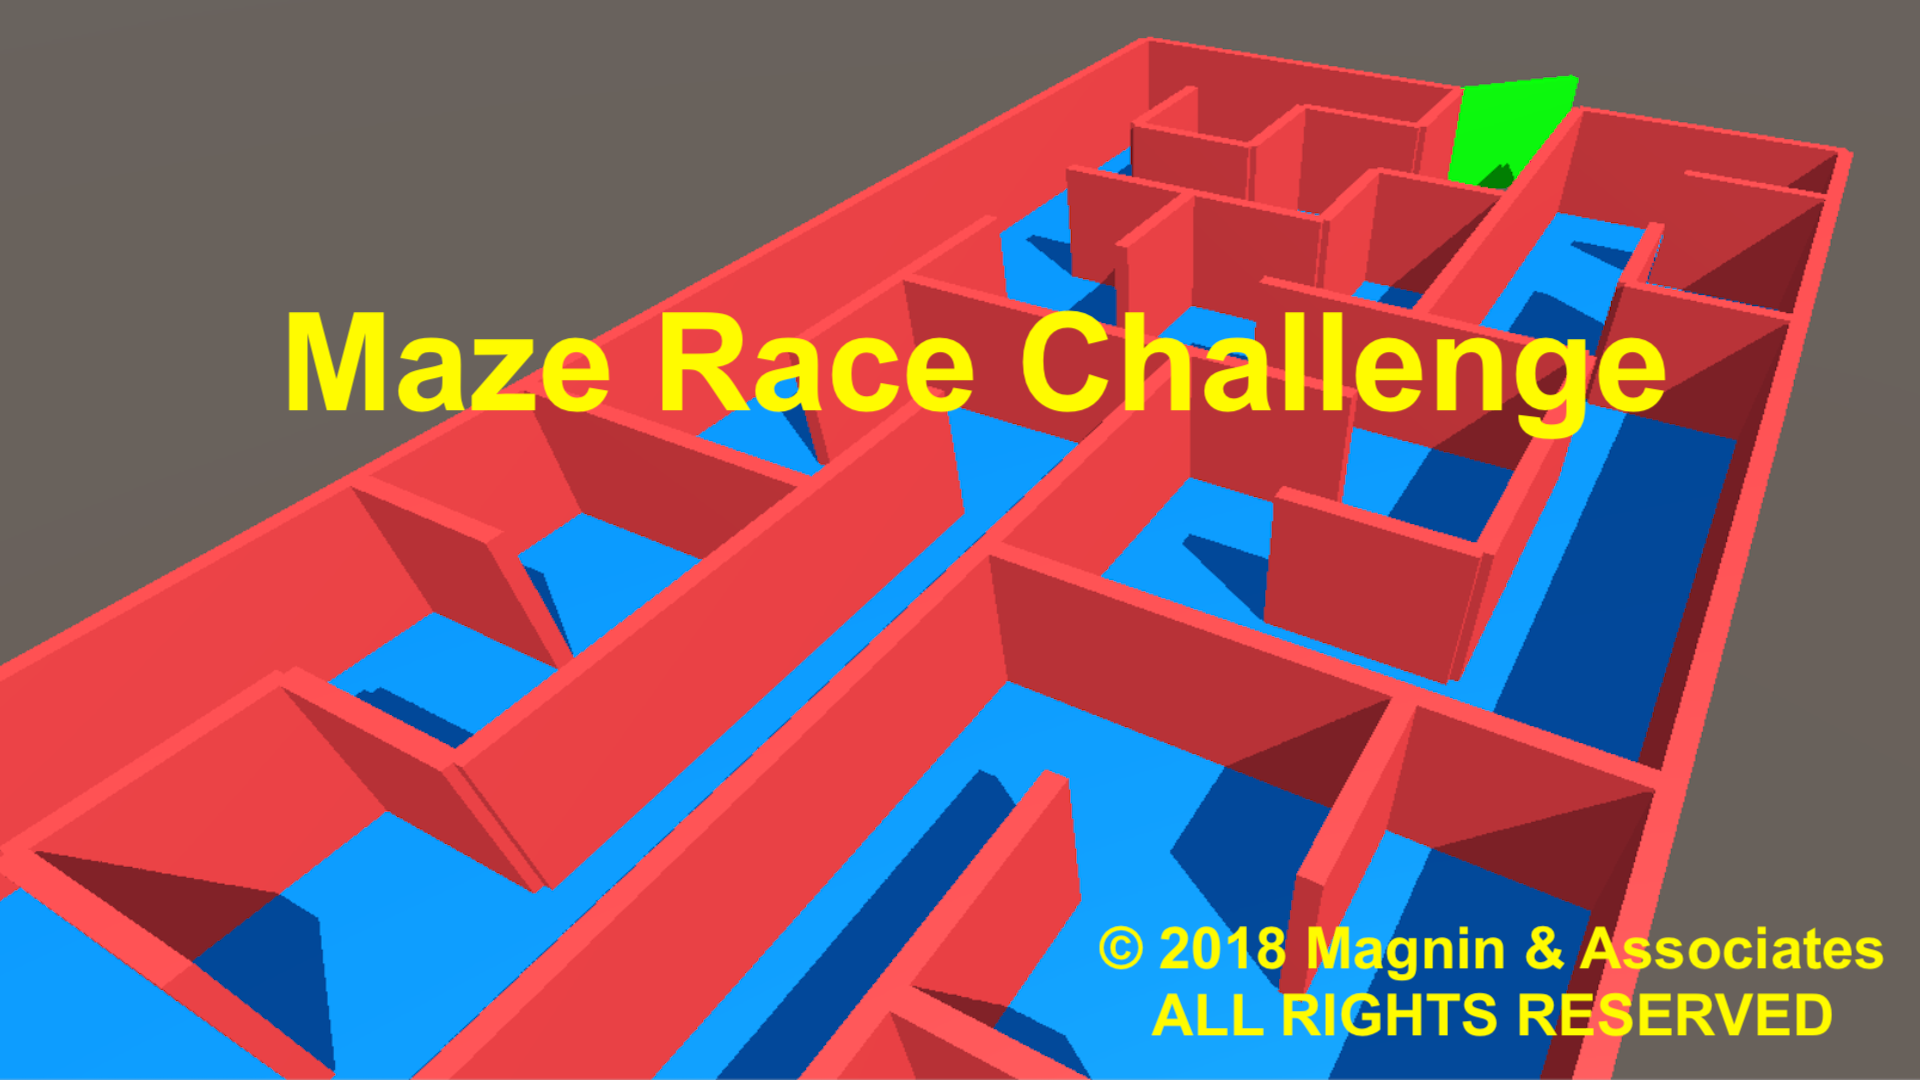 Maze Race Challenge new game for iOS, Android, Windows 10 PC & Xbox Image